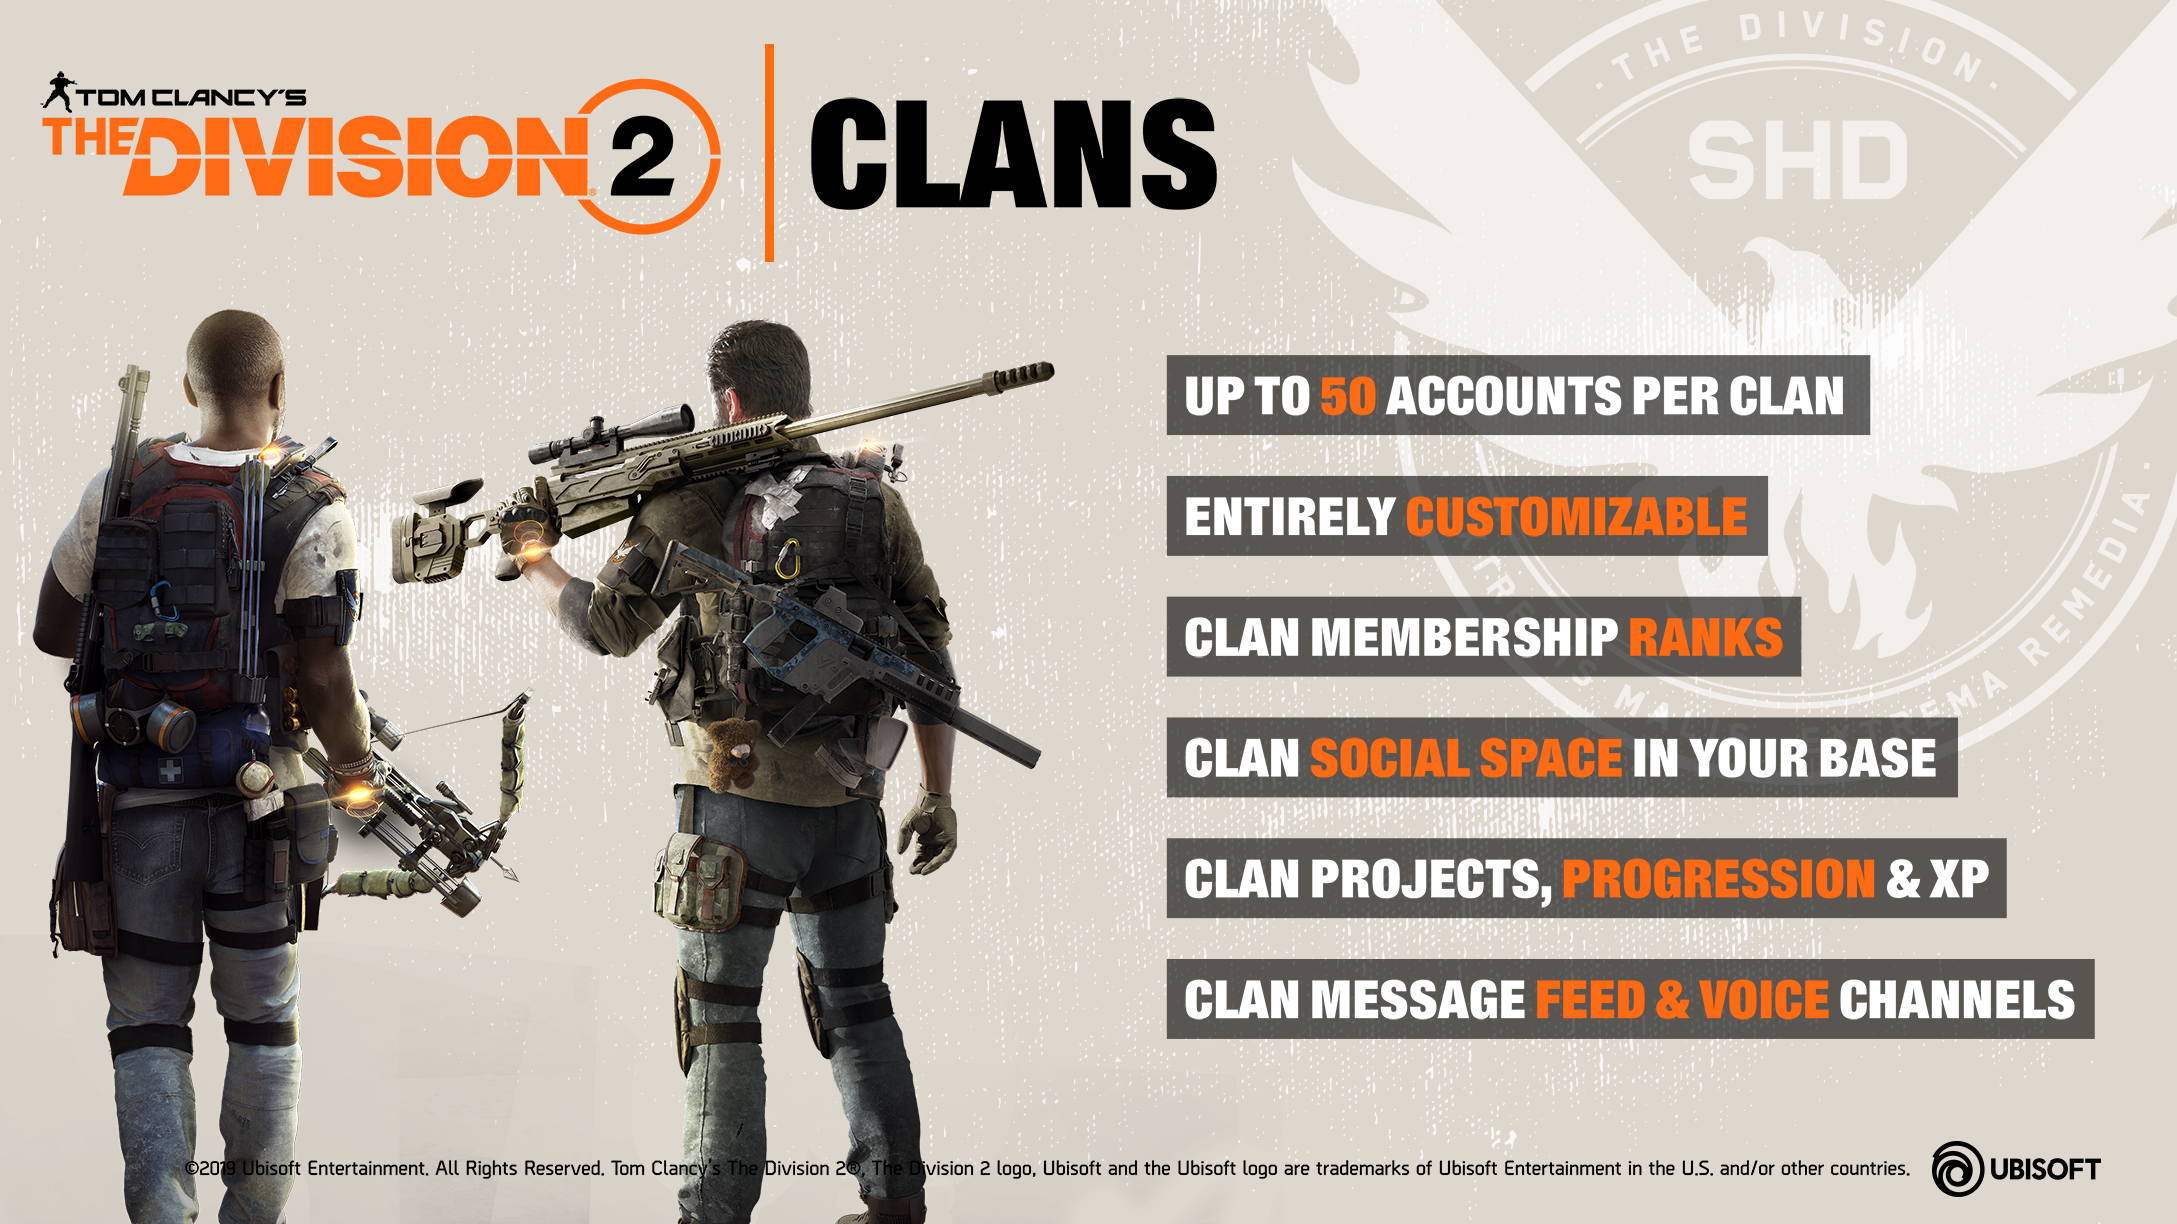 Information about the Clan feature in The Division 2